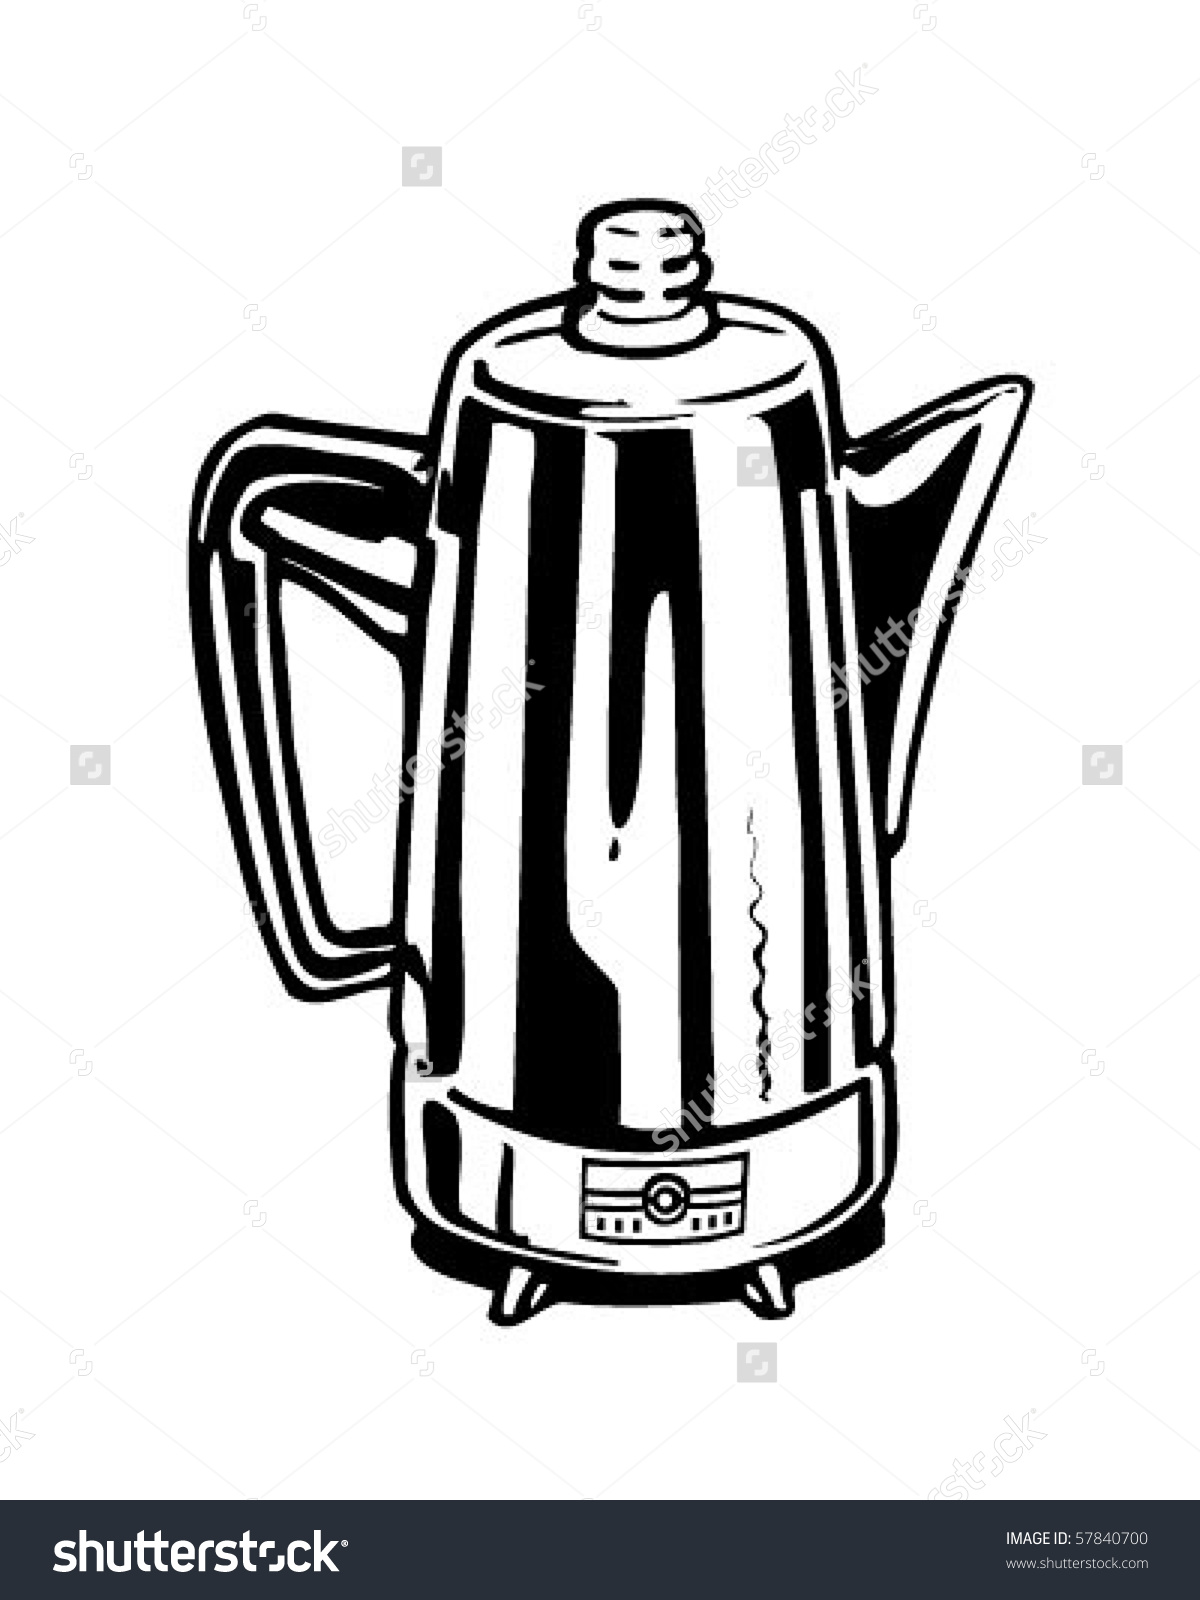 Coffee Percolator Clipart Clipground